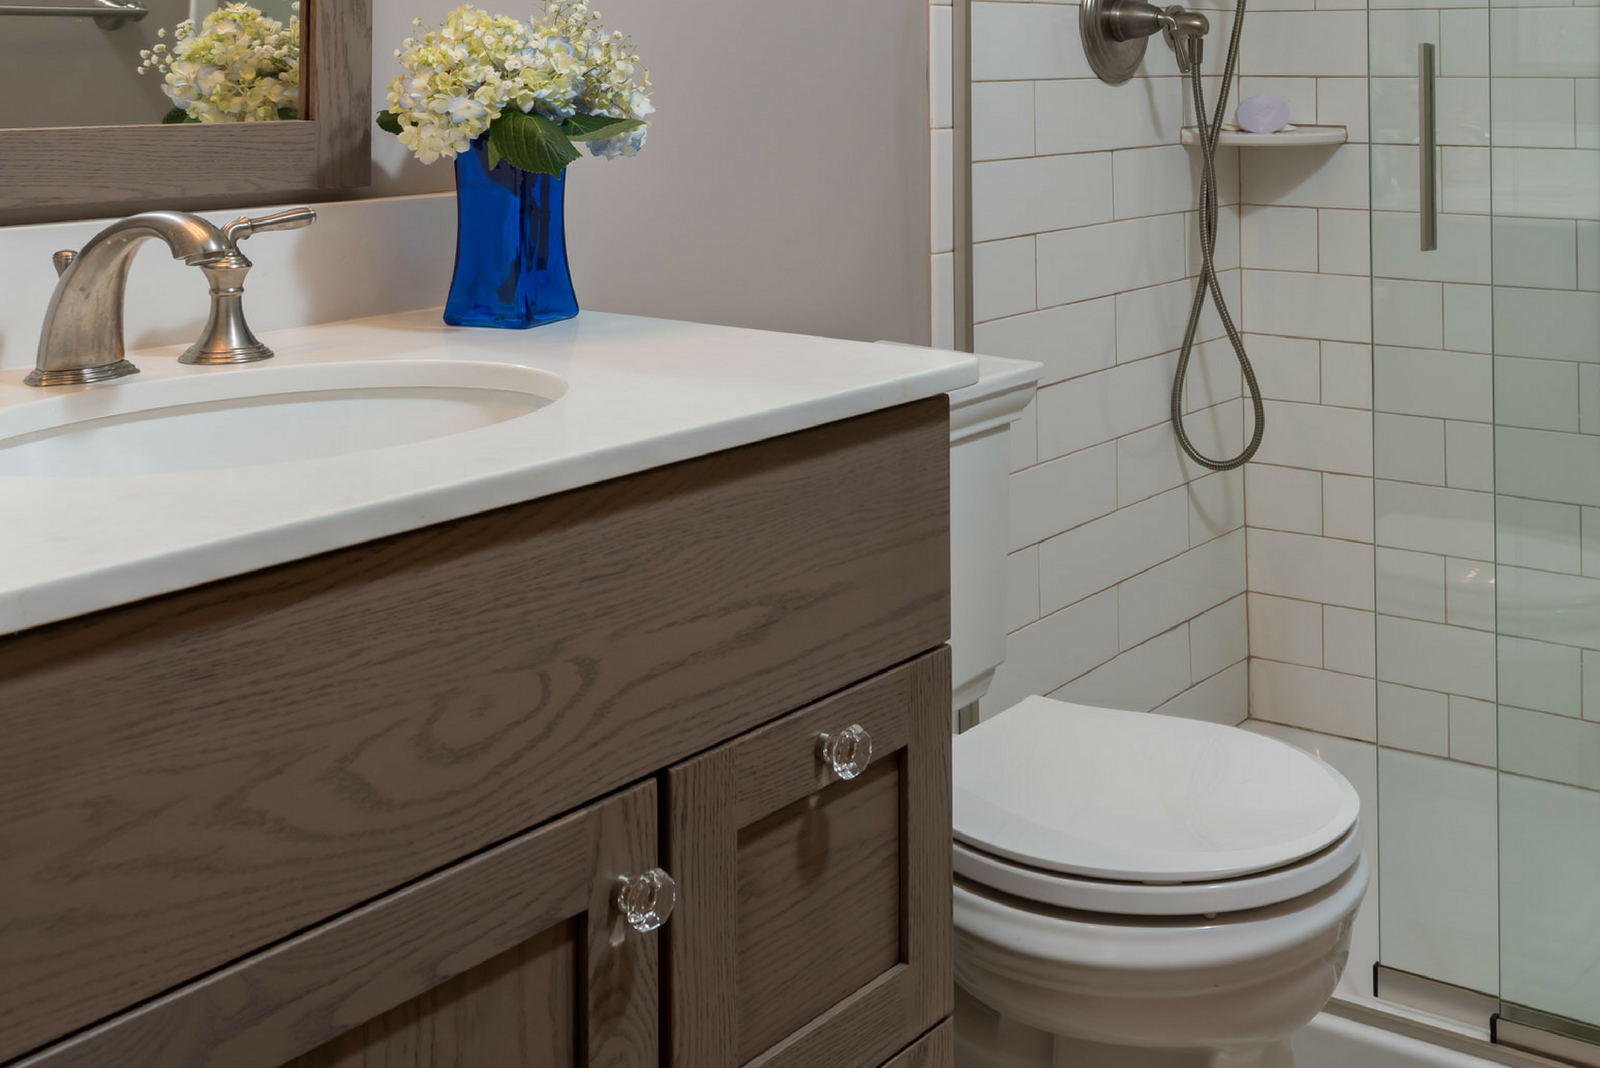 Bathroom Remodel With Custom Cabinets - Hinman Construction